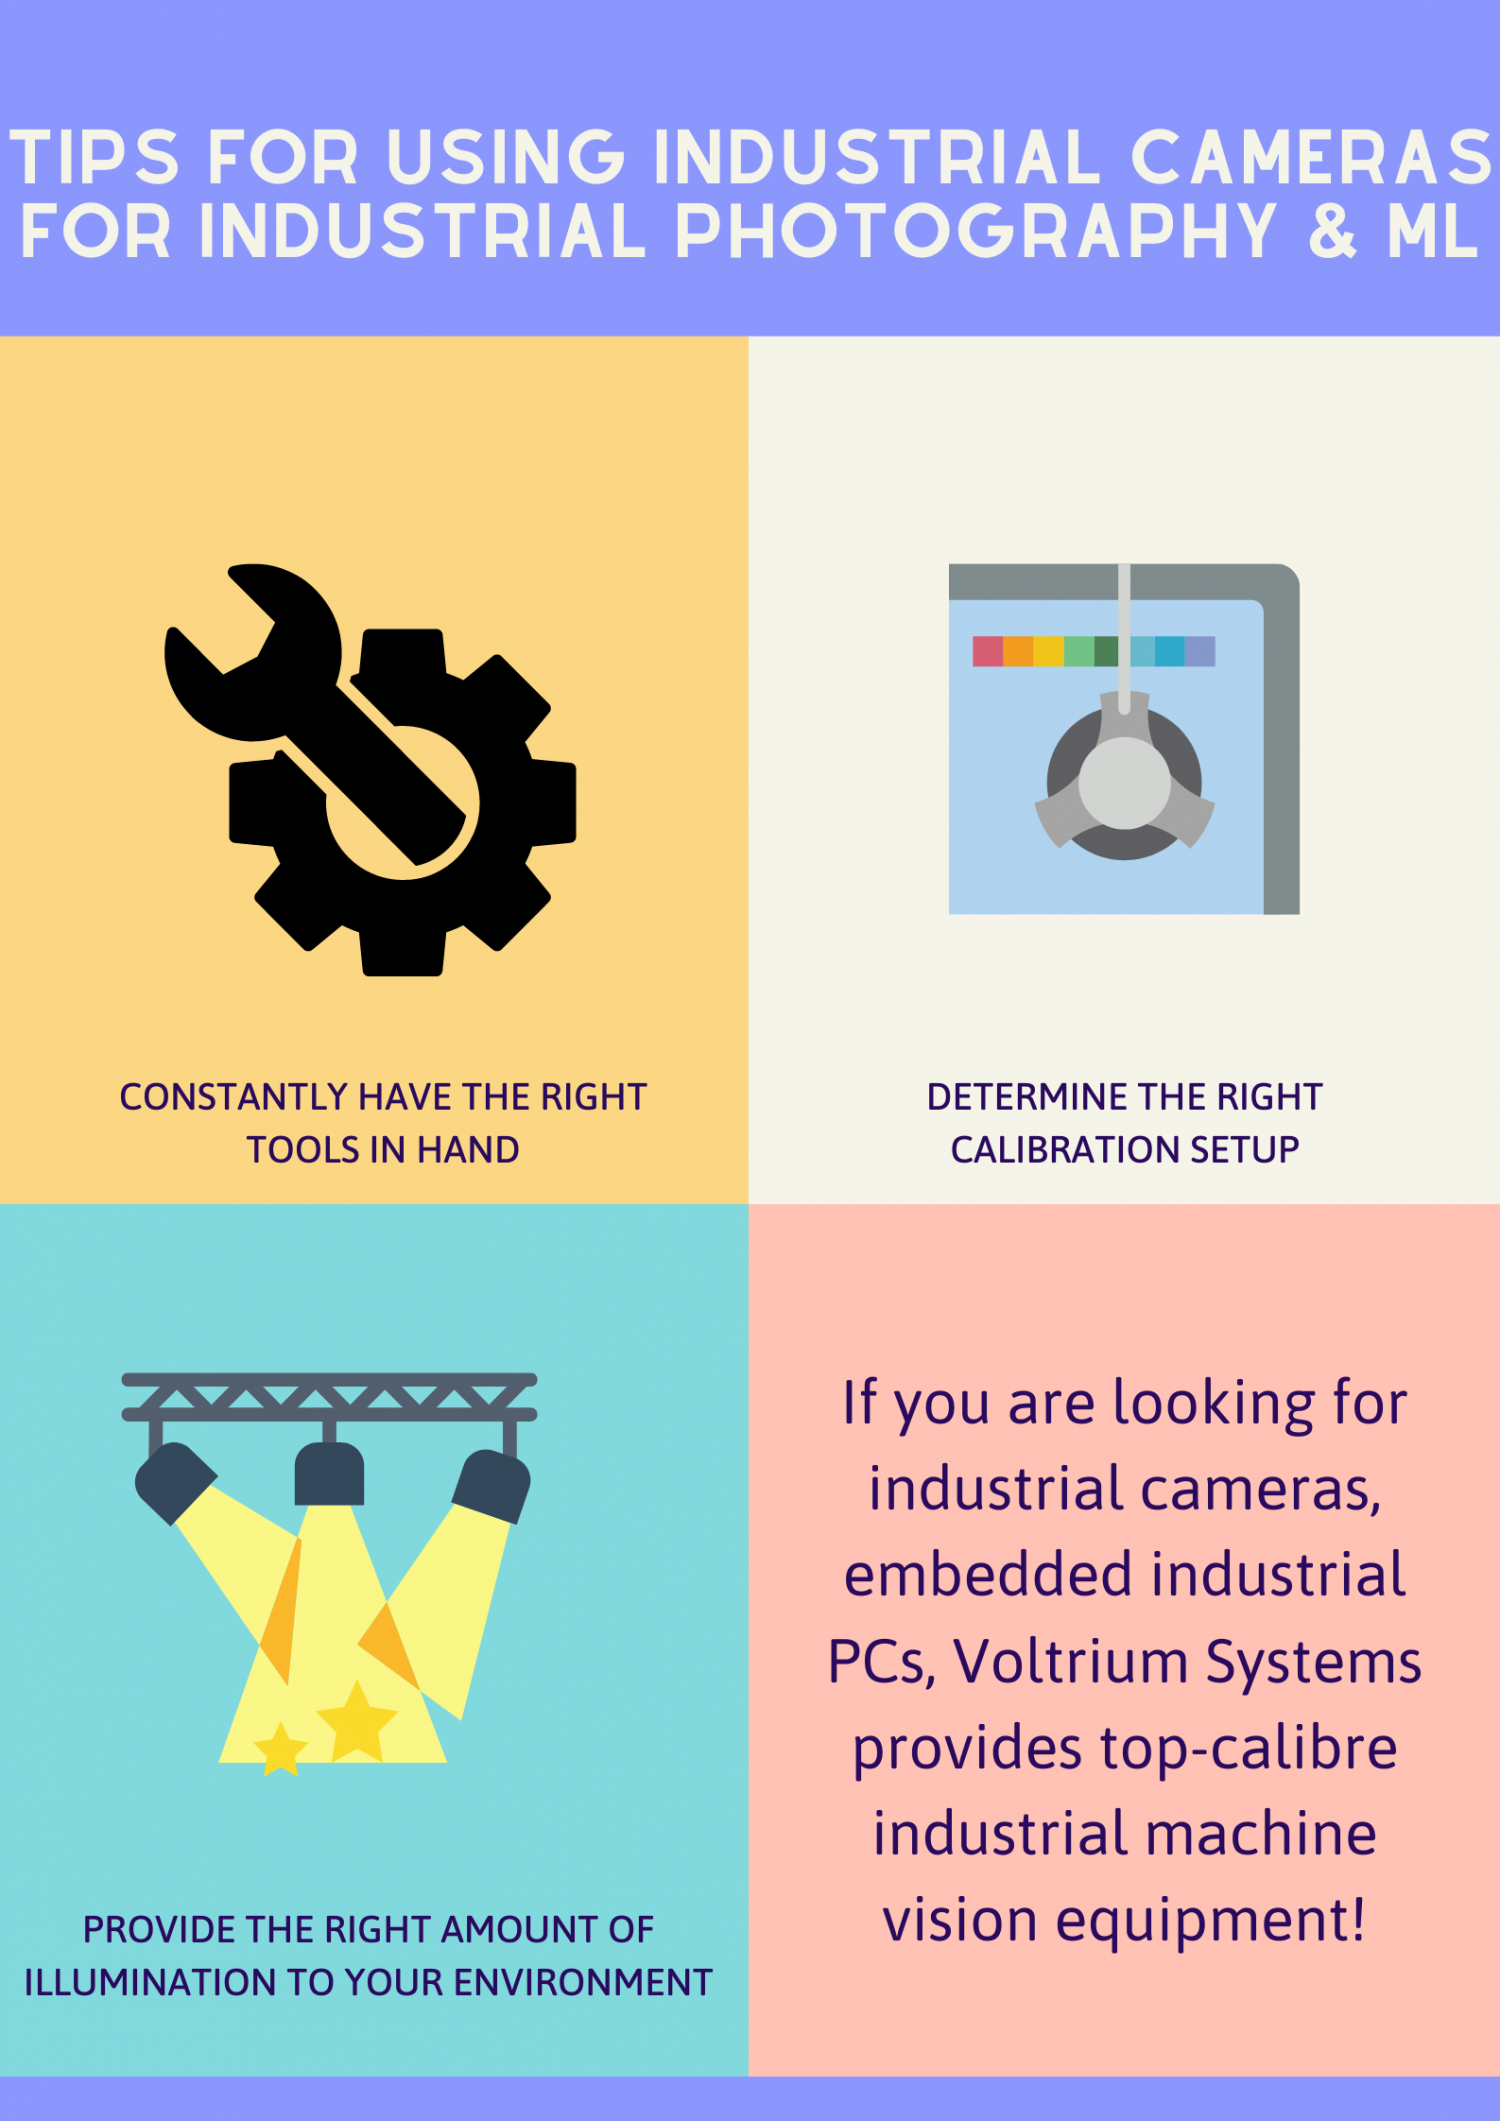 Tips For Using Industrial Cameras For Industrial Photography & ML Infographic